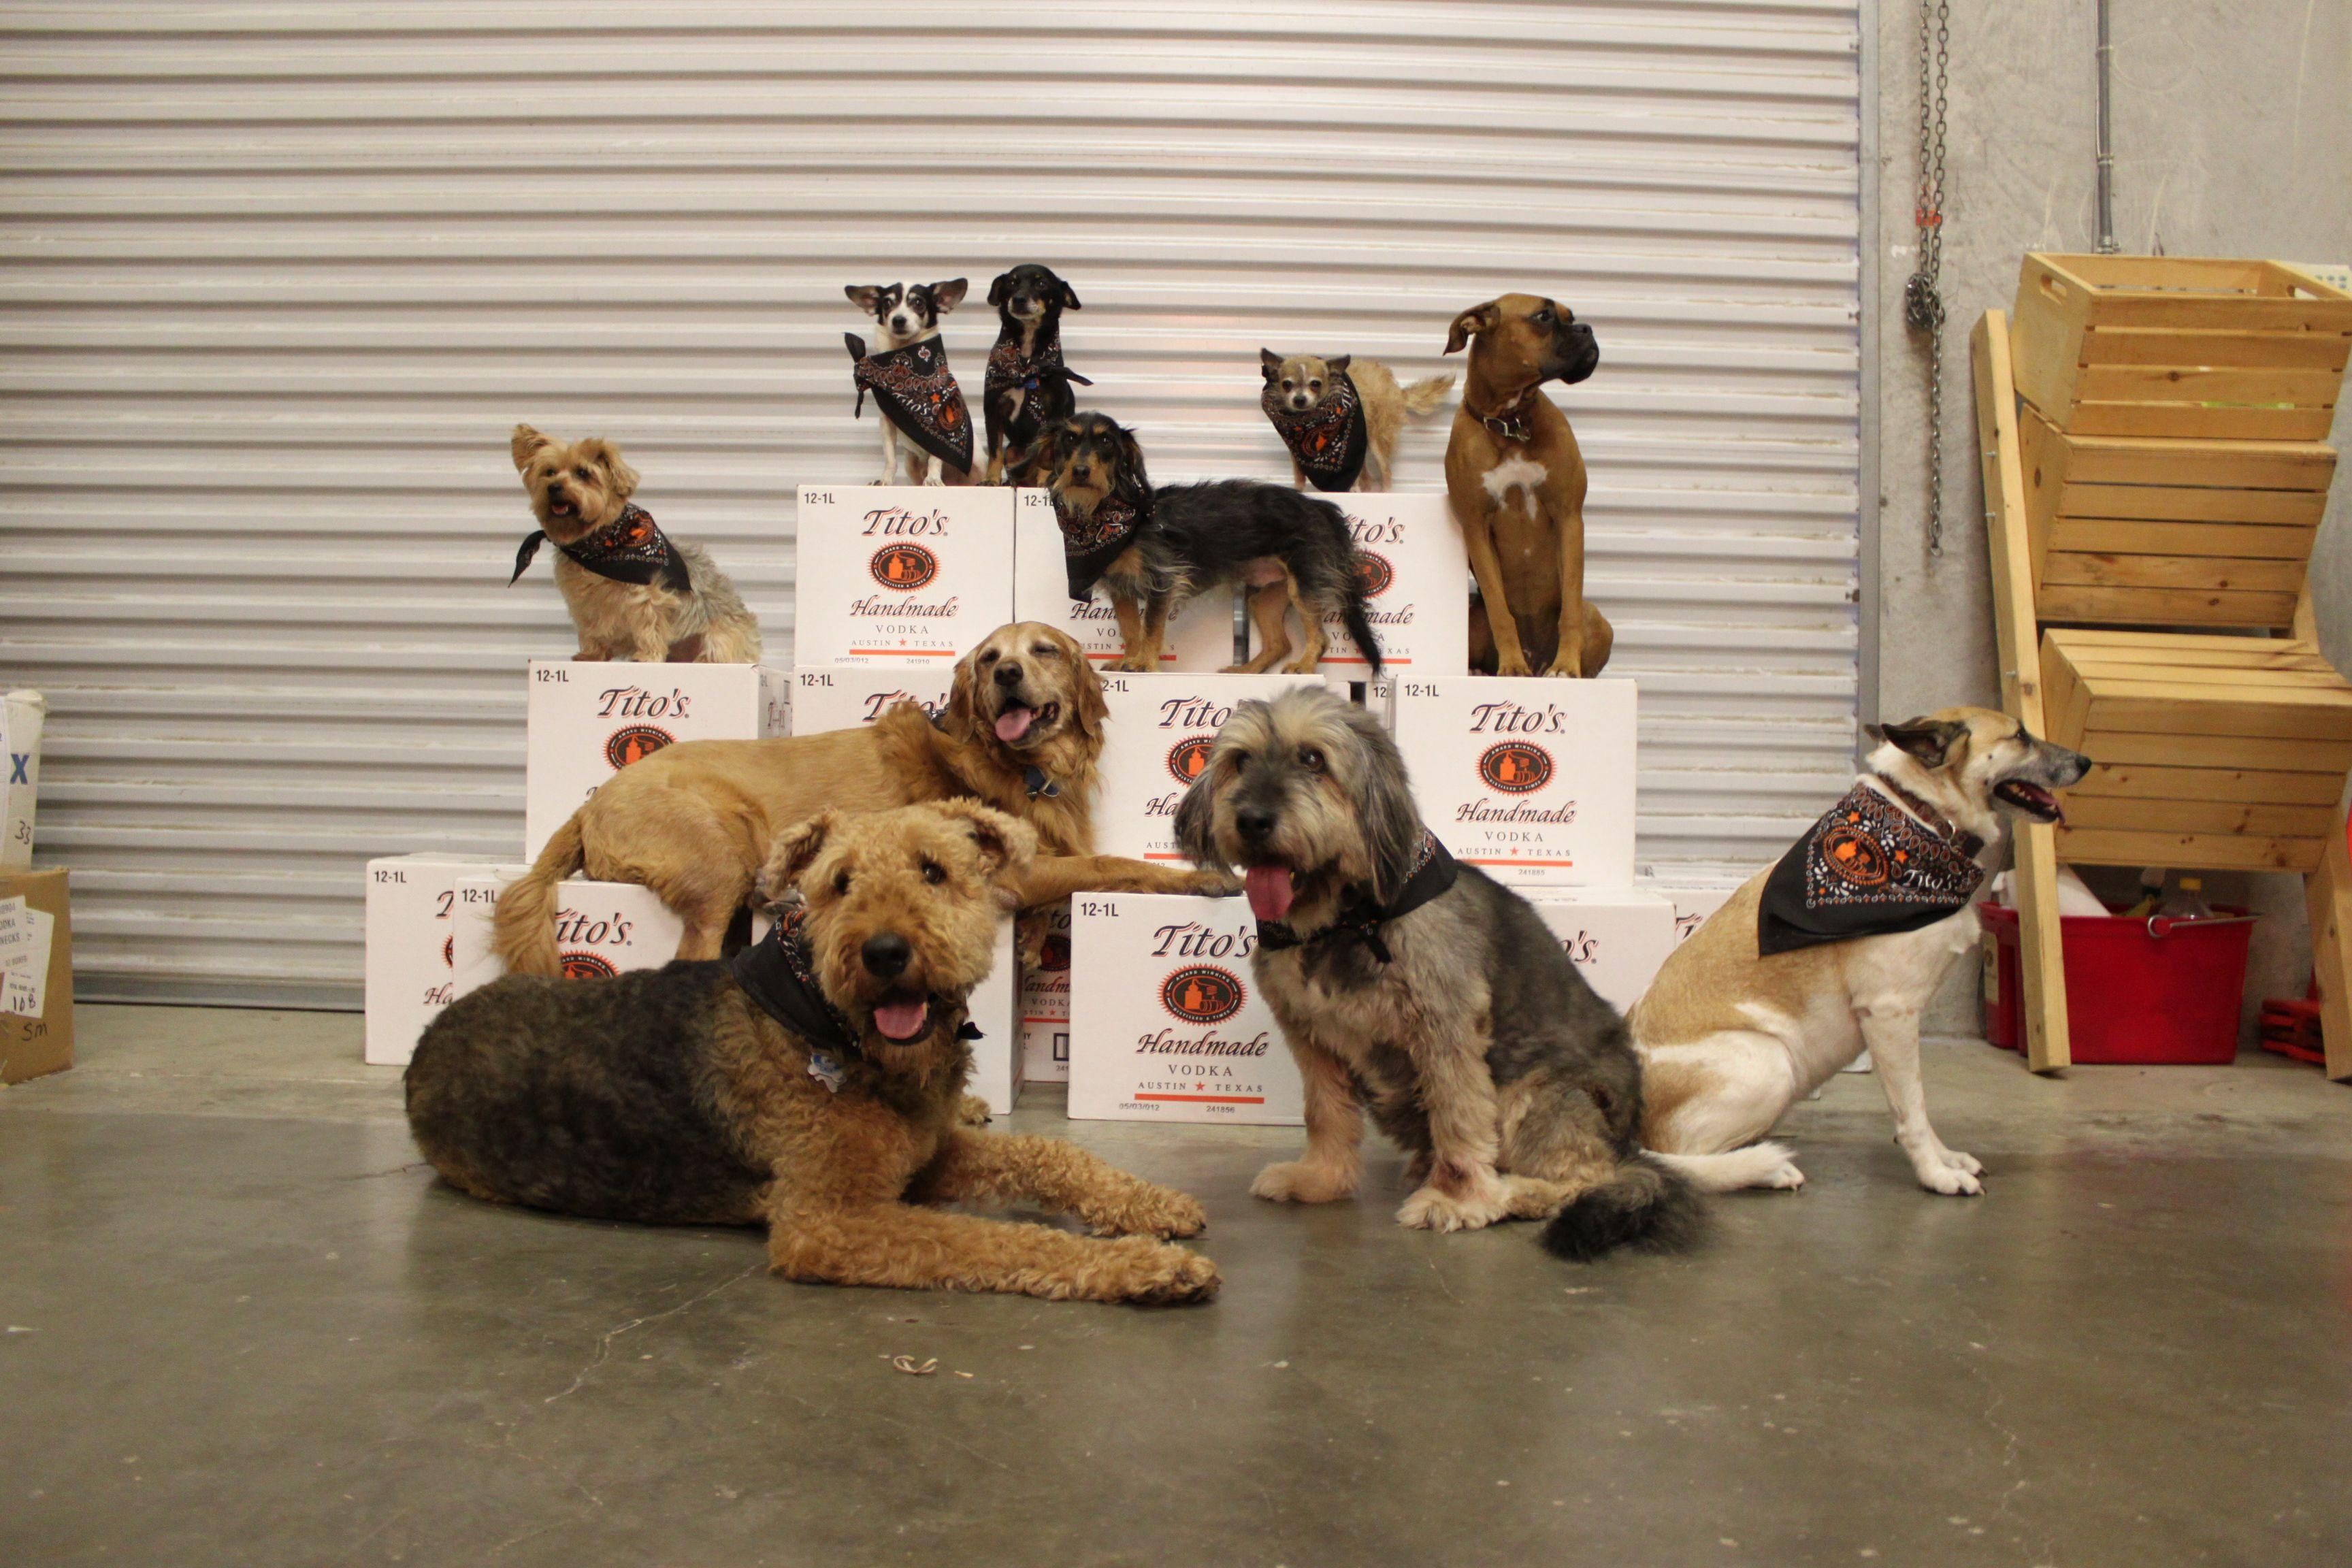 Happy Take Your Dog To Work Day! Here Are A Few Of The